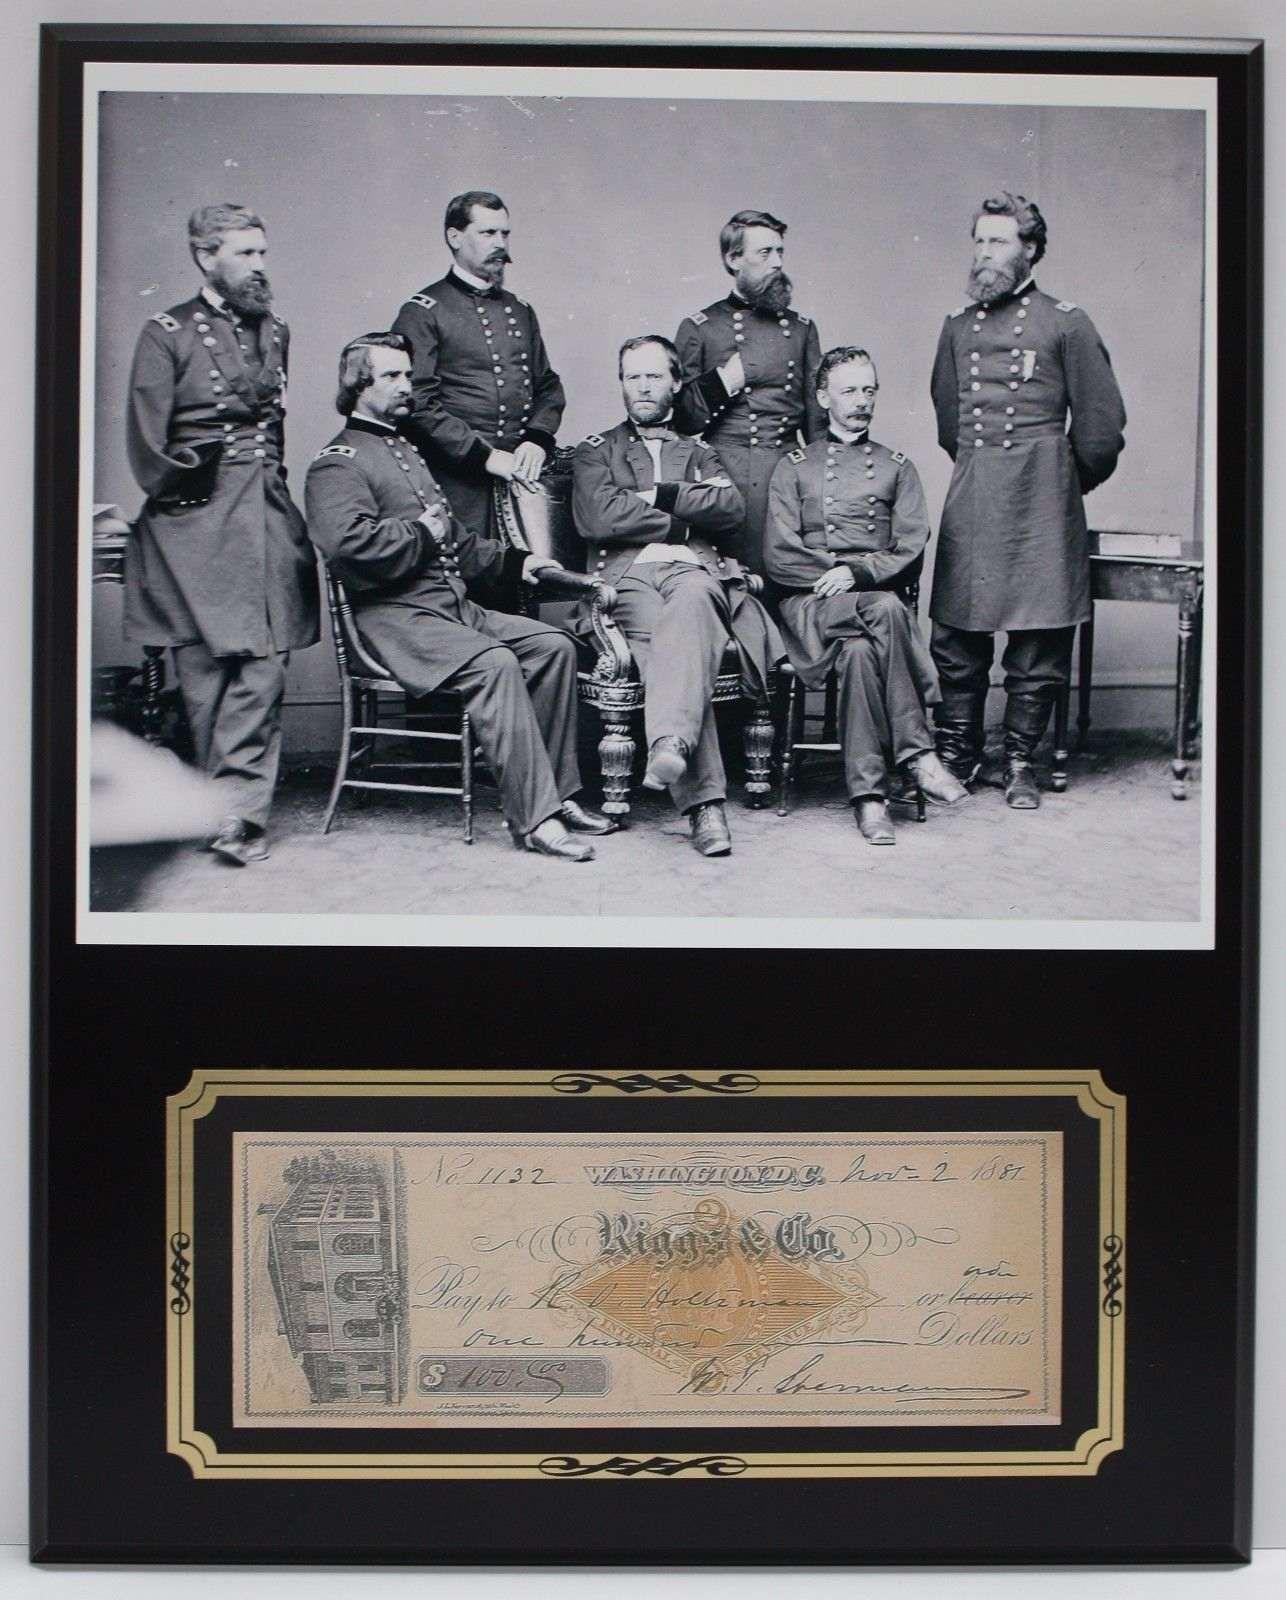 William Tecumseh Sherman Reproduction Signed Limited Edition Check Display